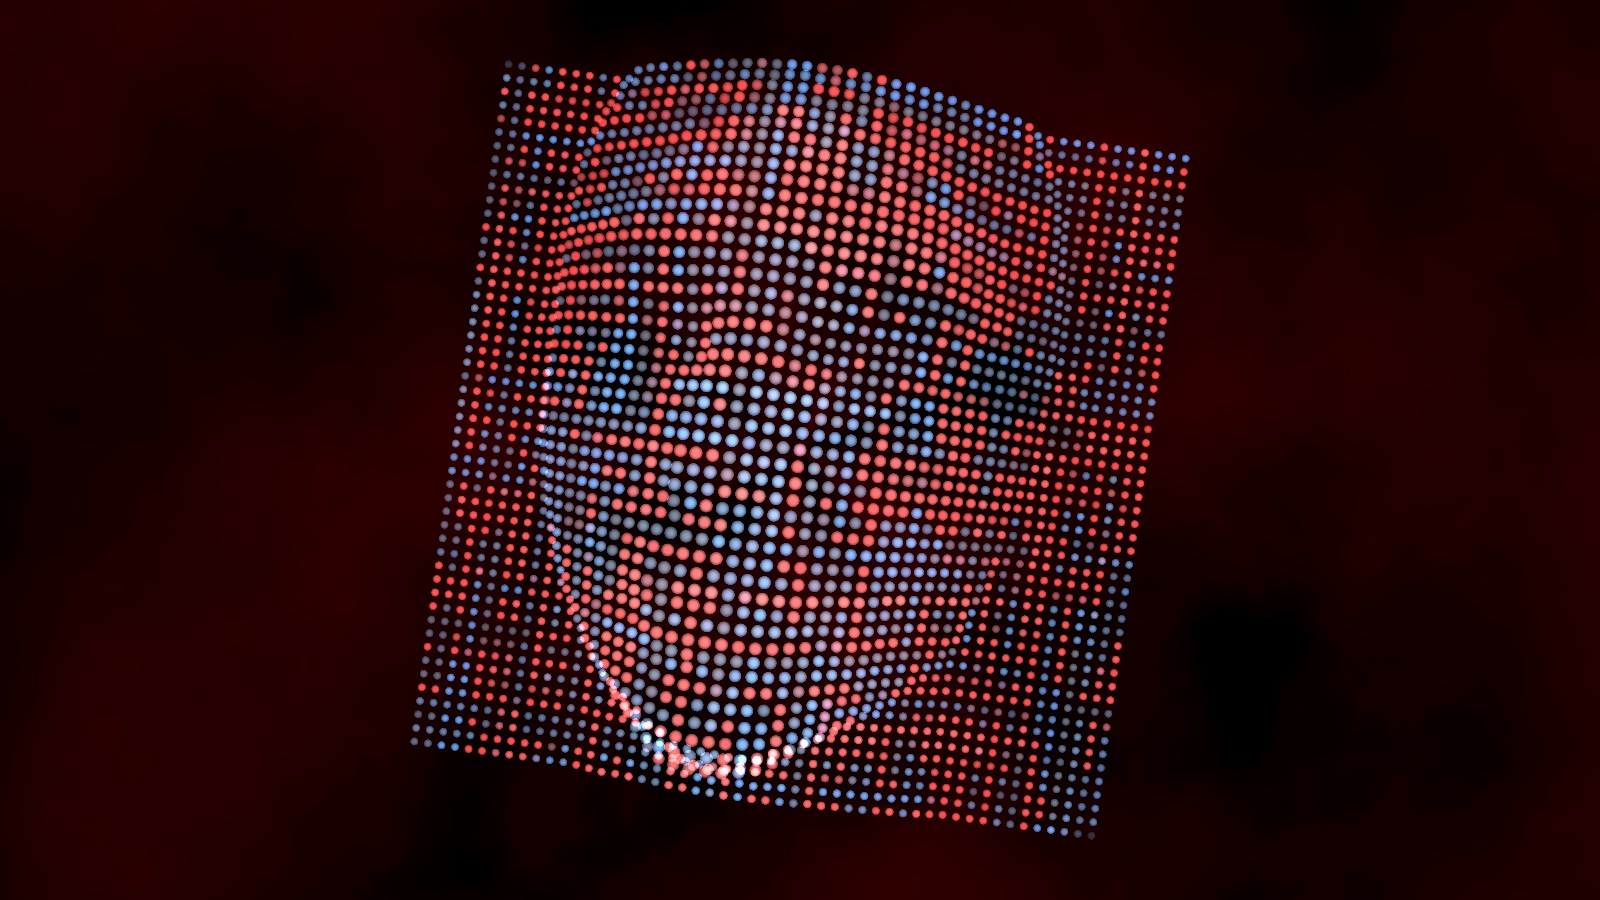 A silhouette of a digital face in blue and red dots.